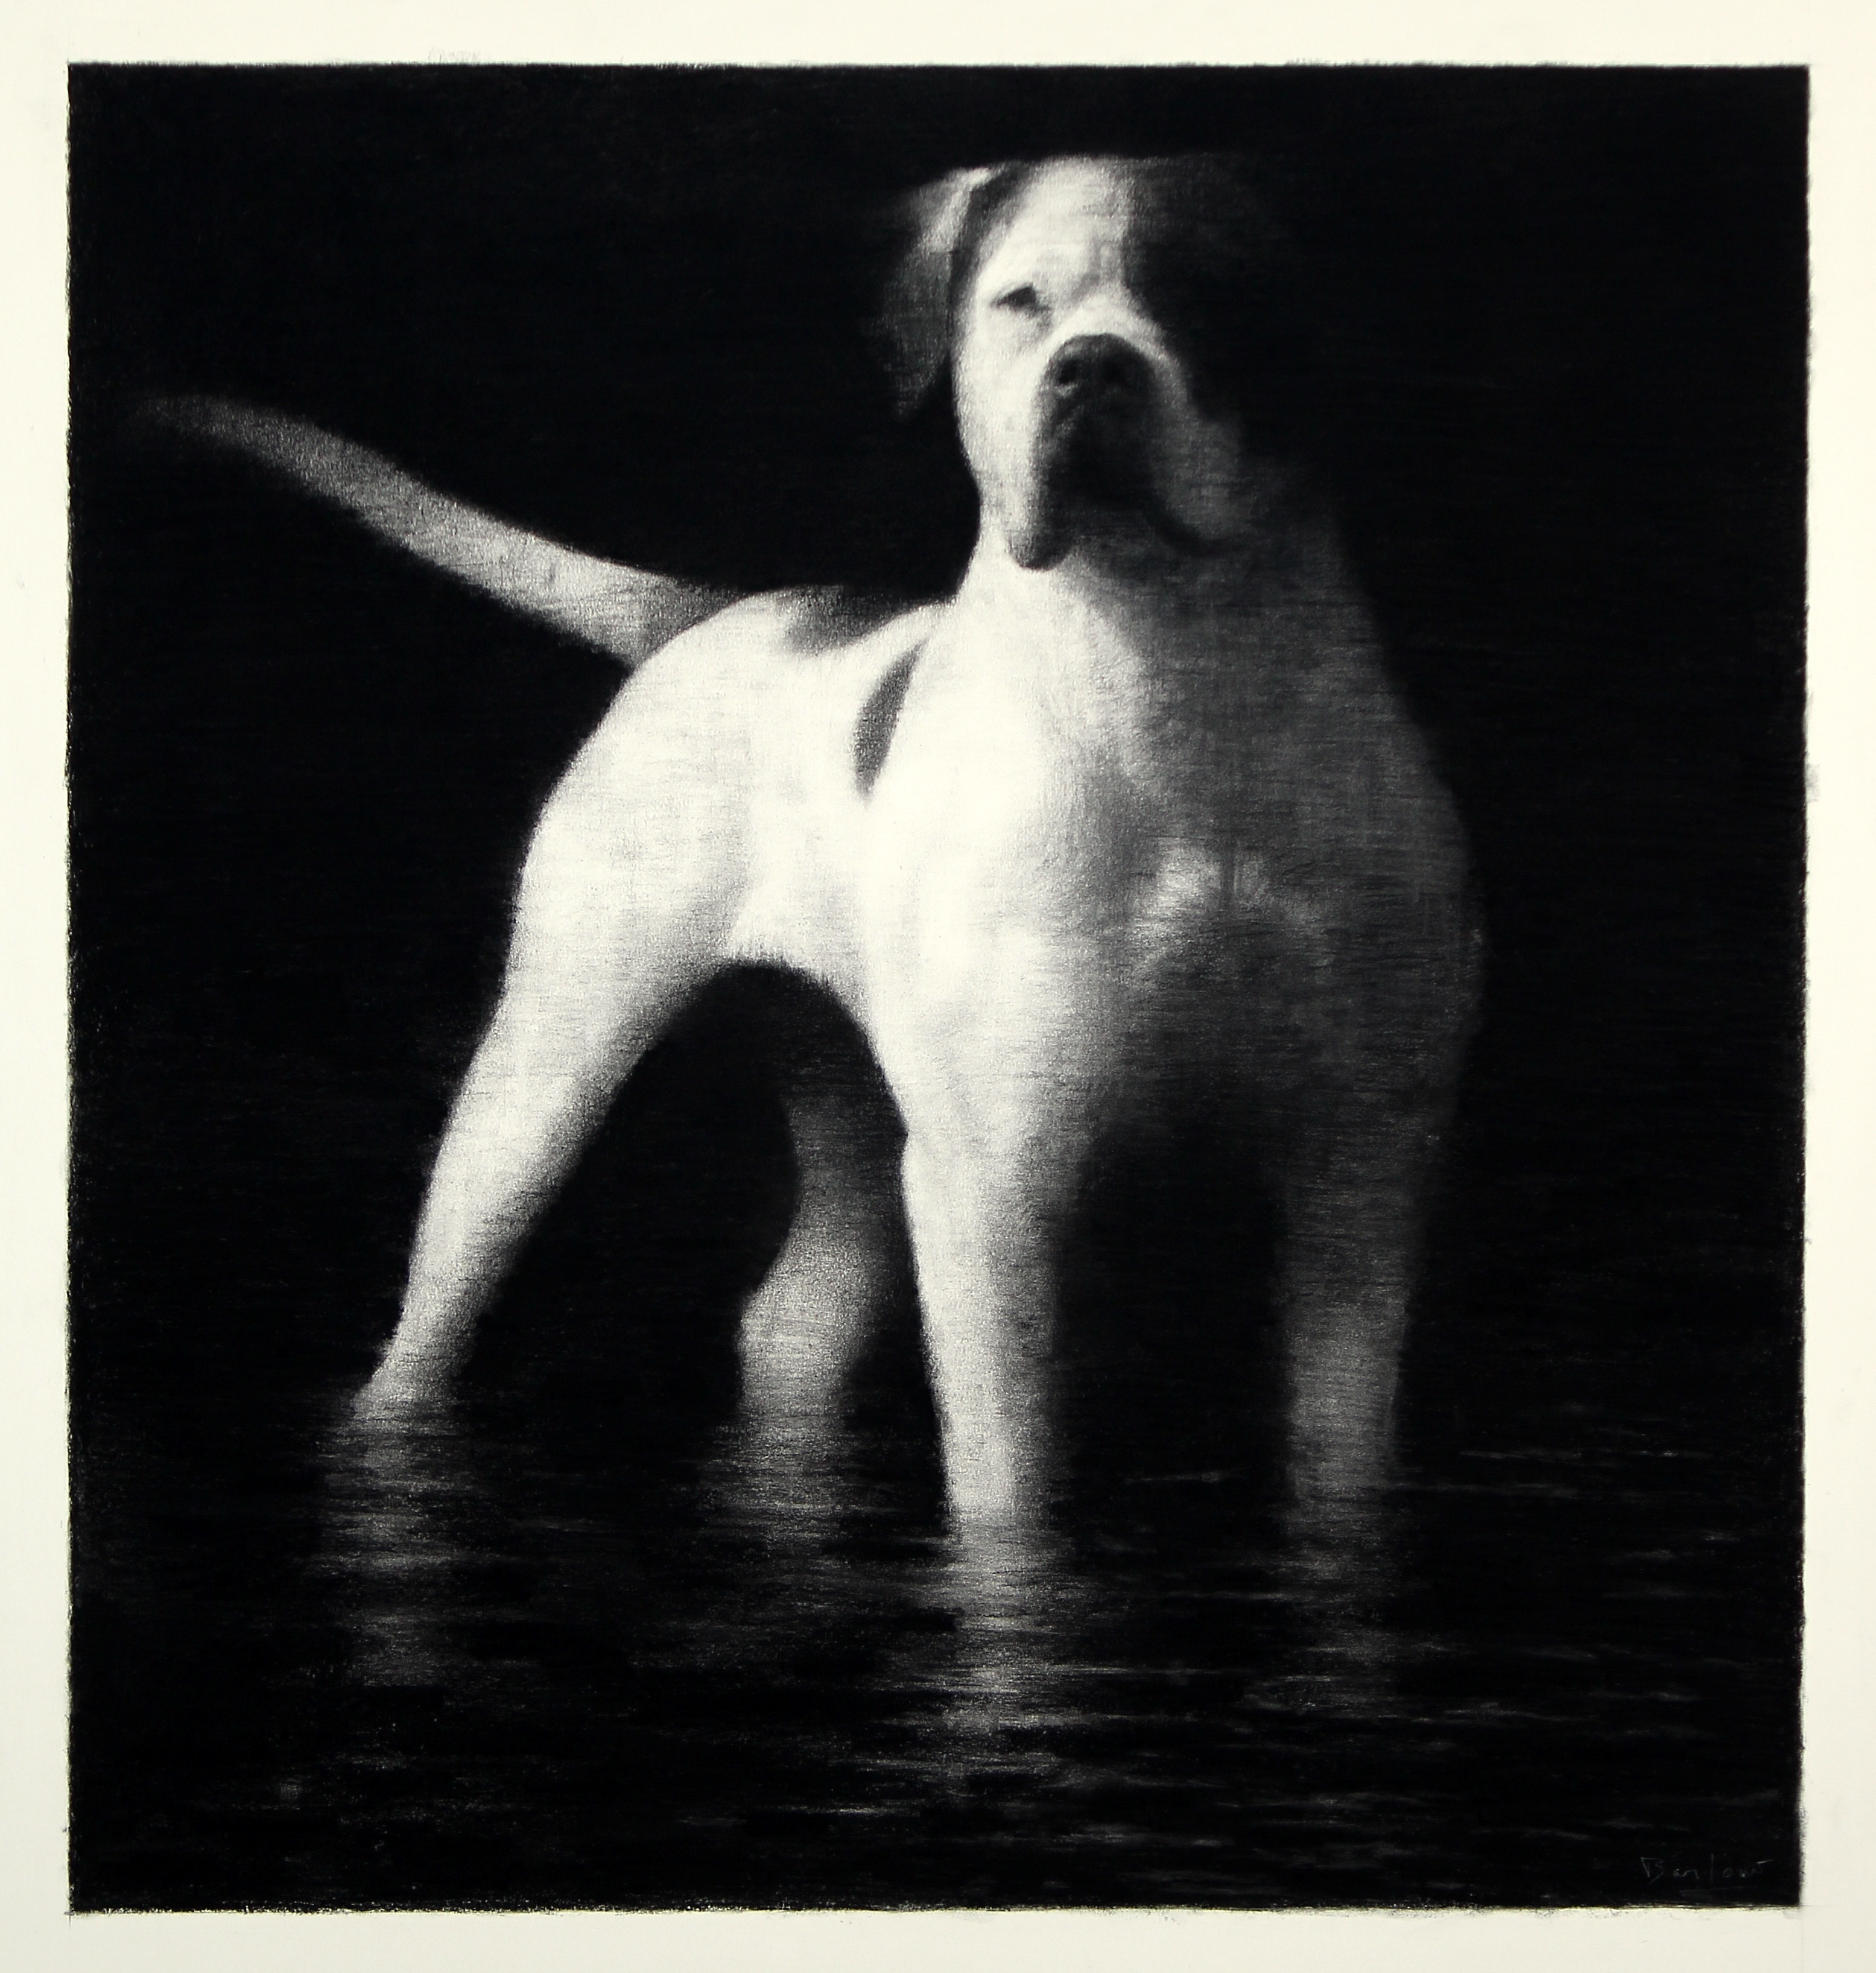 The Dog and Its Reflection charcoal on paper, 80 x 85cm copy 2